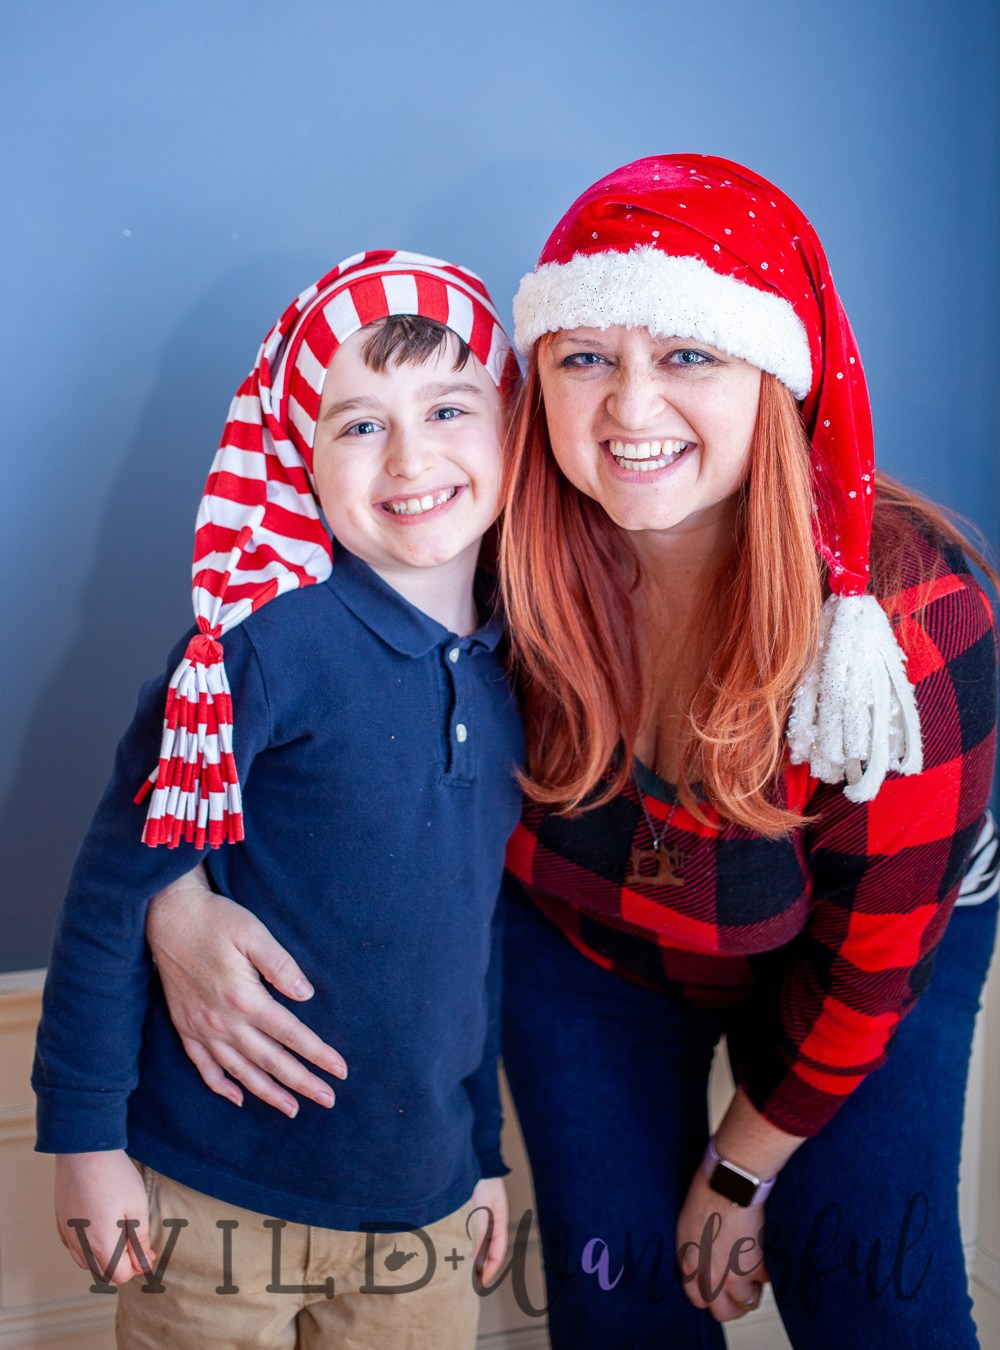 P4P Holiday Freebies :: Pirate Stocking Cap